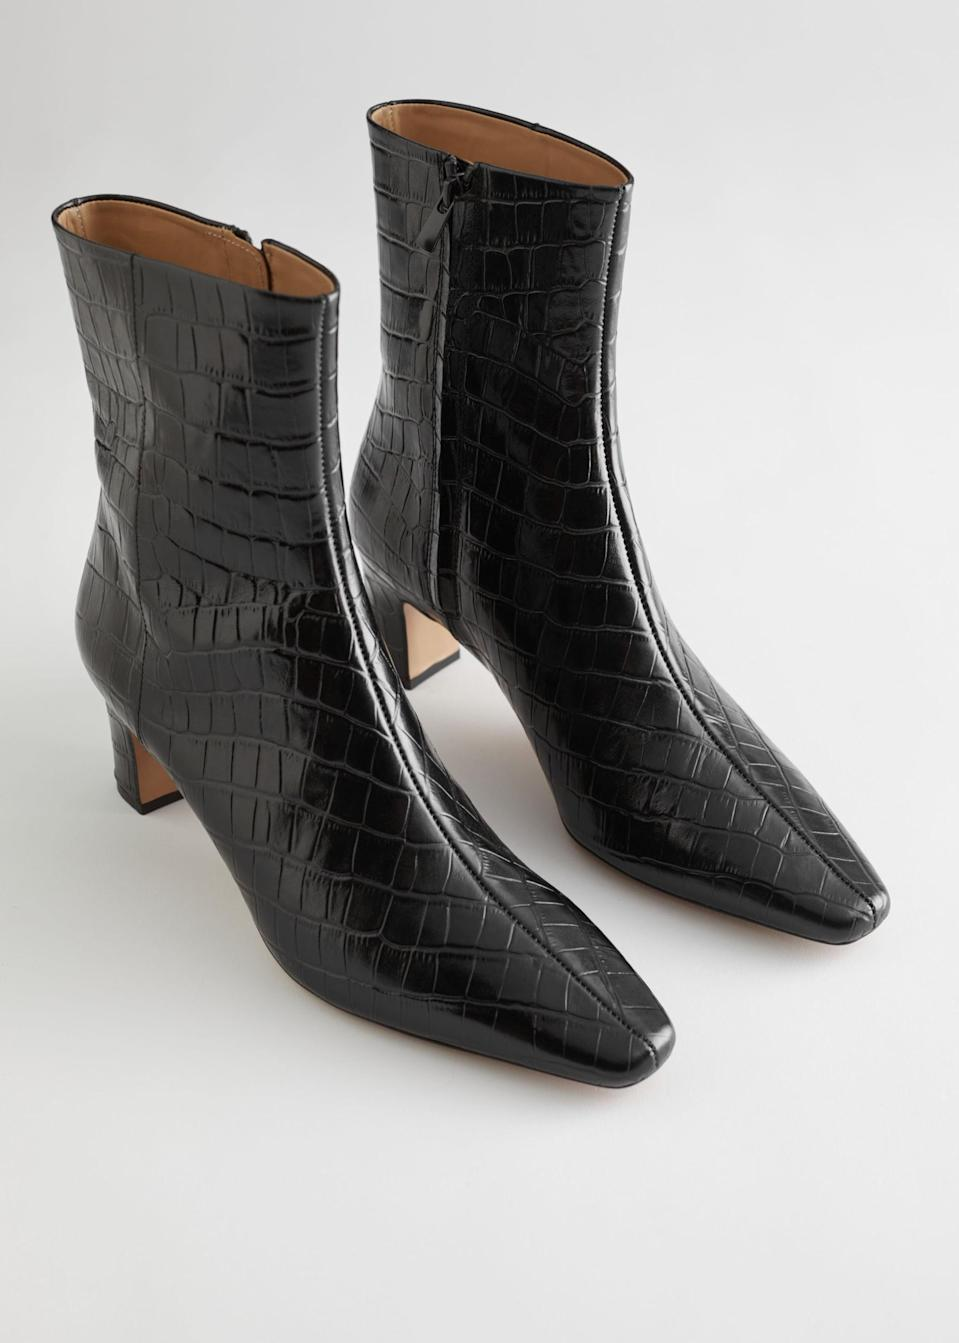 <p>These <span>&amp; Other Stories Croc Leather Heeled Ankle Boots</span> ($179) make a luxe everyday pair.</p>